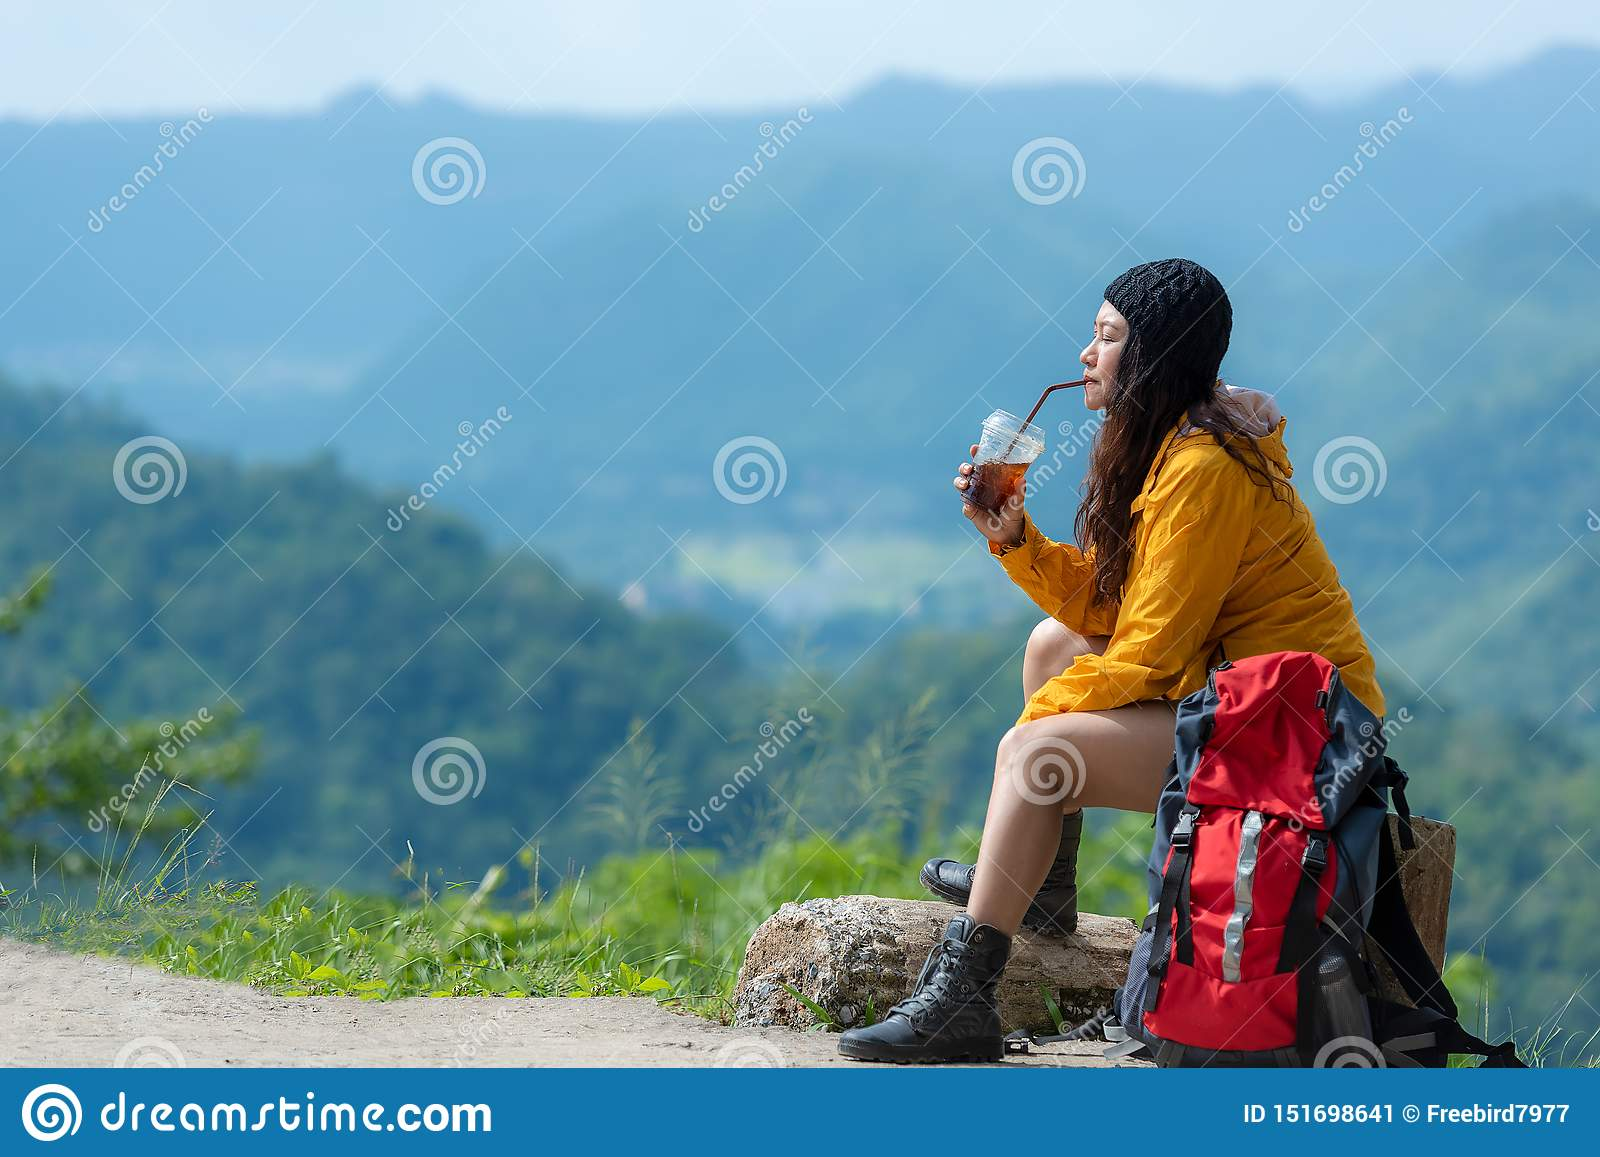 Hiker Asian Woman Sitting And Drinking Coffee For Relax And Rest On Mountain. Female Adventure